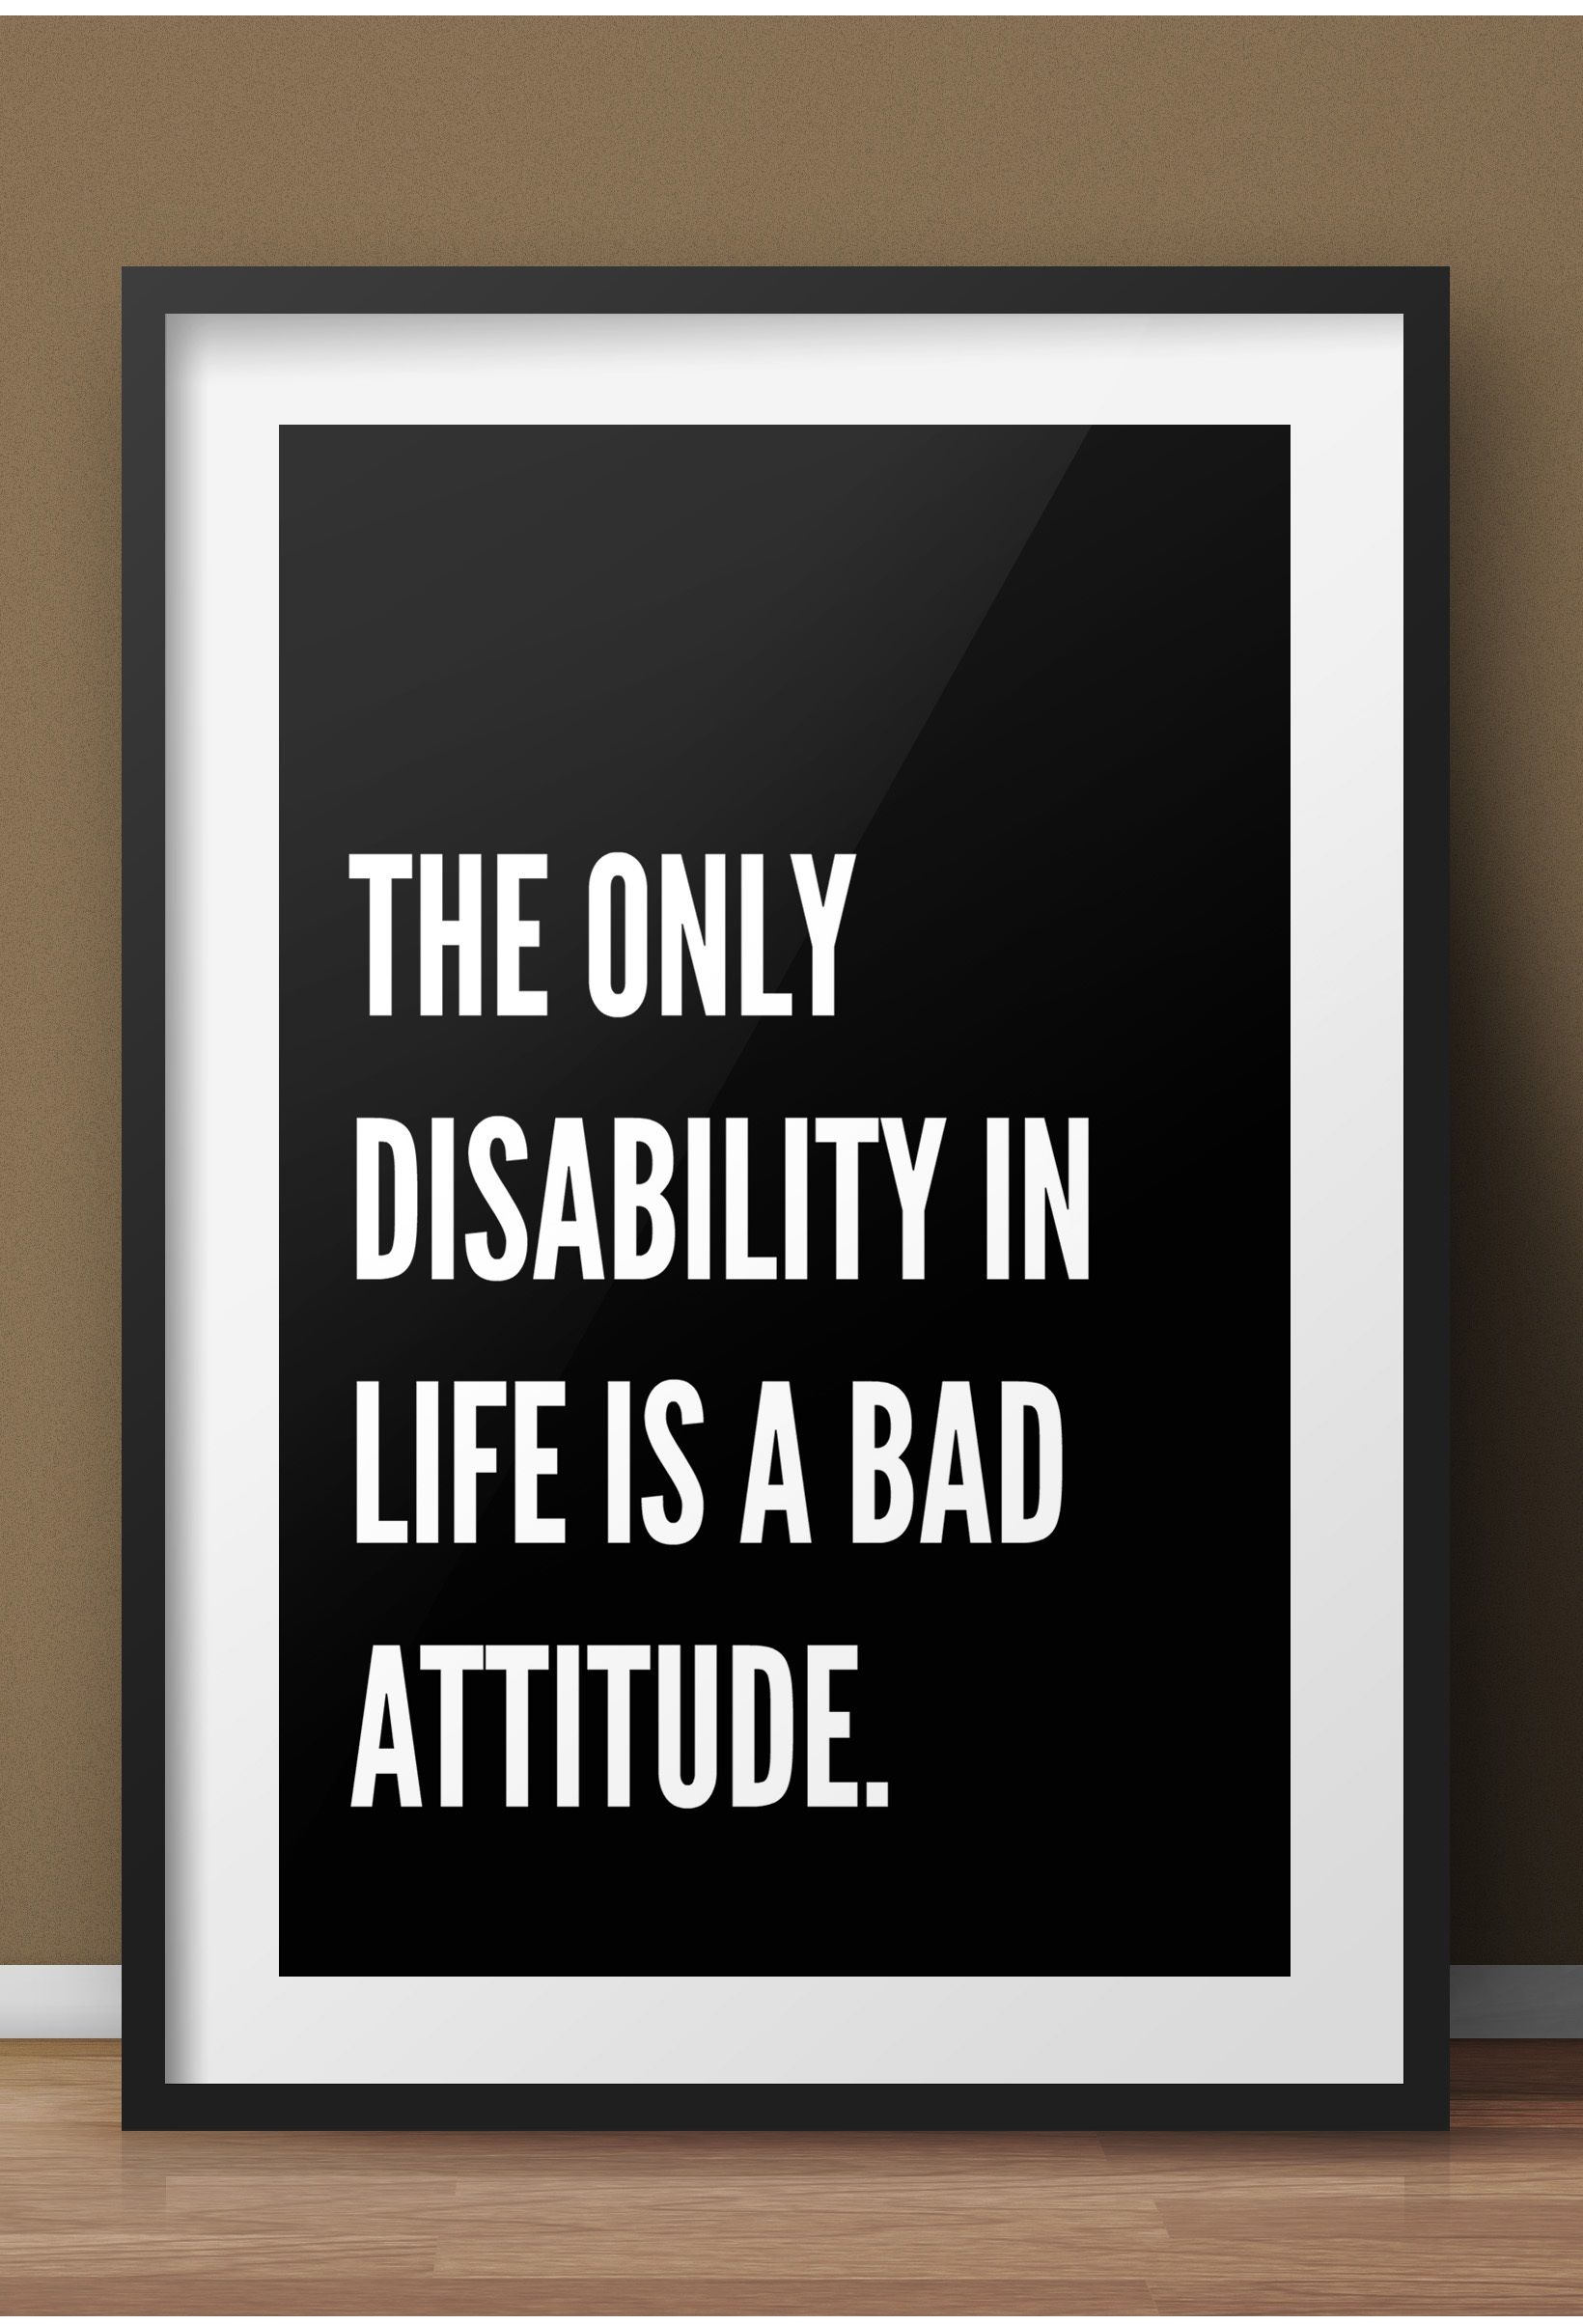 Bad Attitude Quotes The Only Disability In Life Is A Bad Attitude Motivational Print